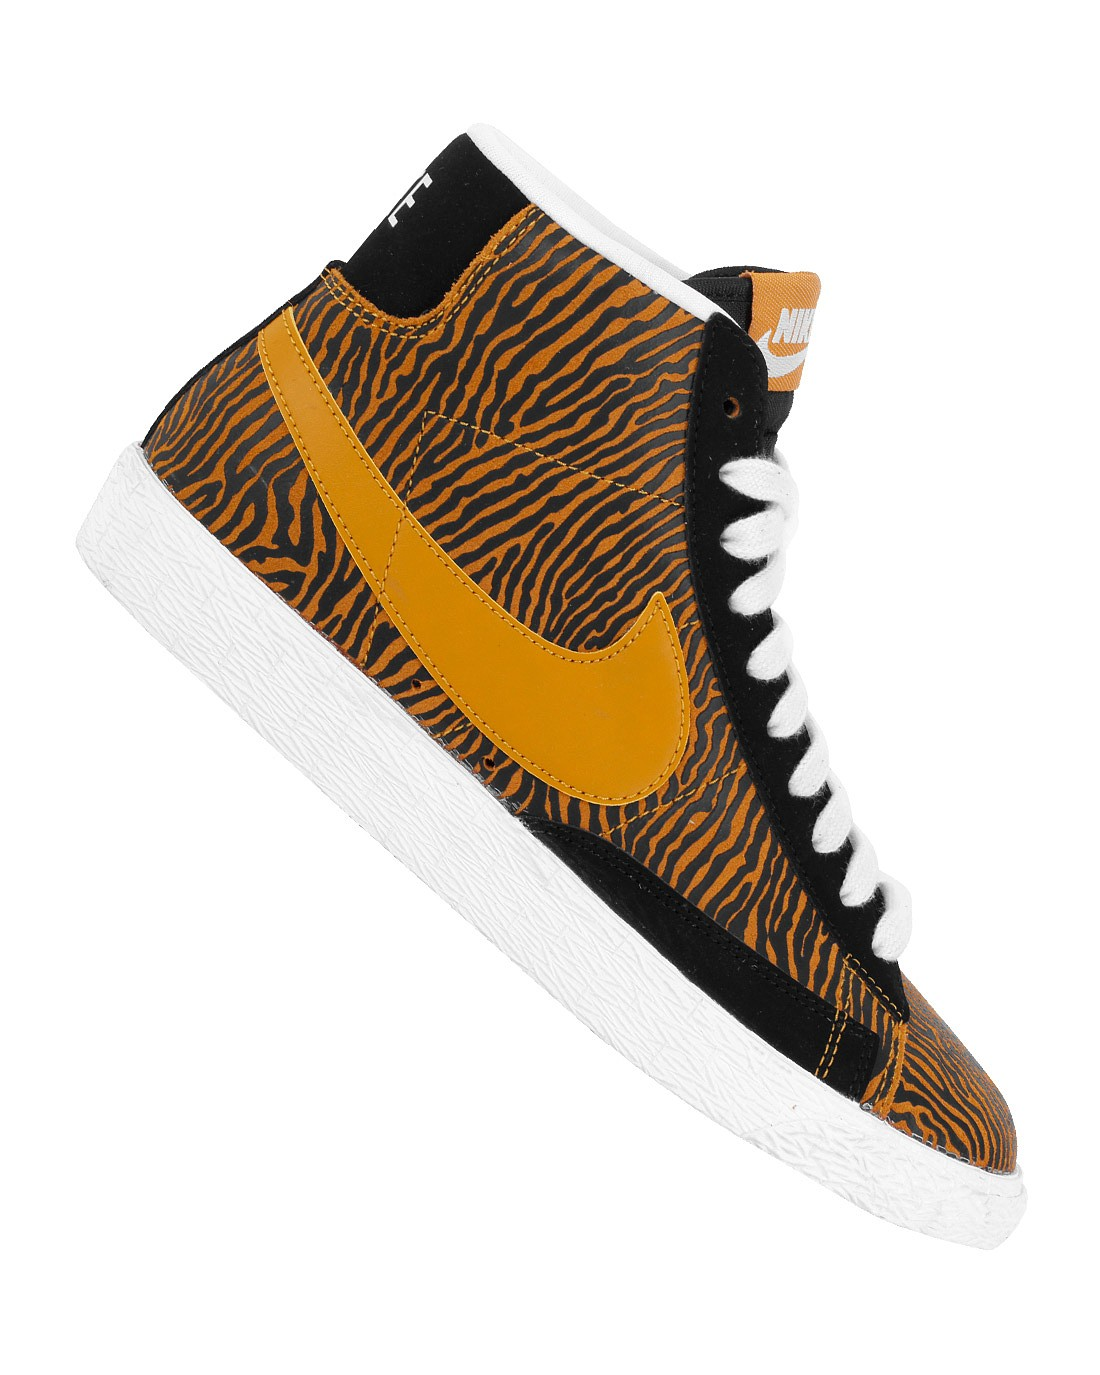 Nike Blazer Mid Suede Print 586304-002 Black Gold White Mens High Top Sneakers